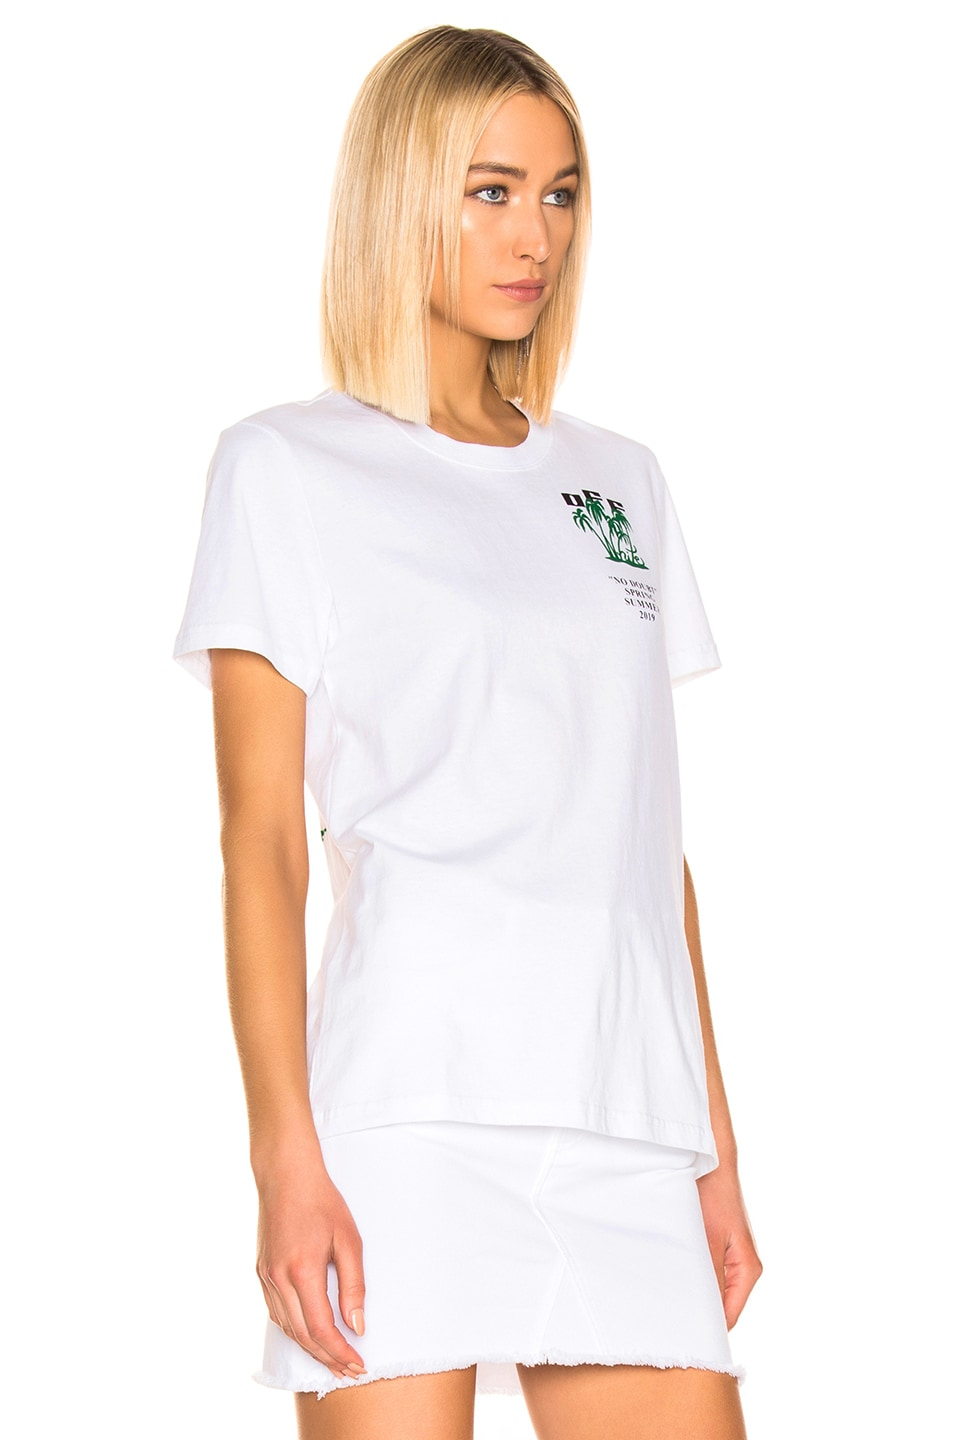 Image 3 of OFF-WHITE Island Tee in White & Green